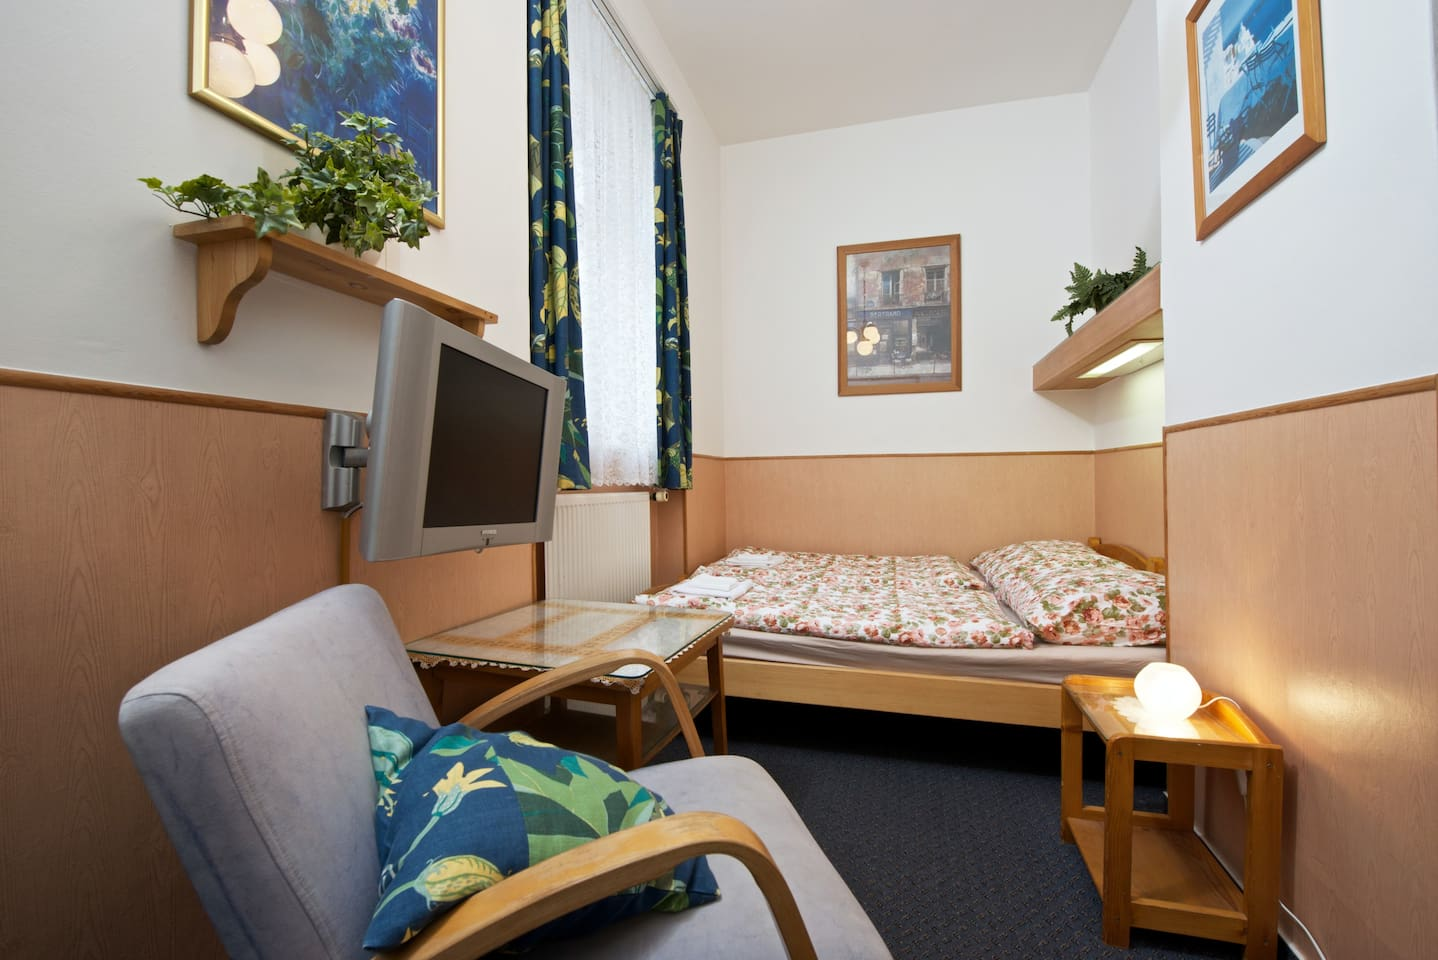 Second bedroom for 3 persons